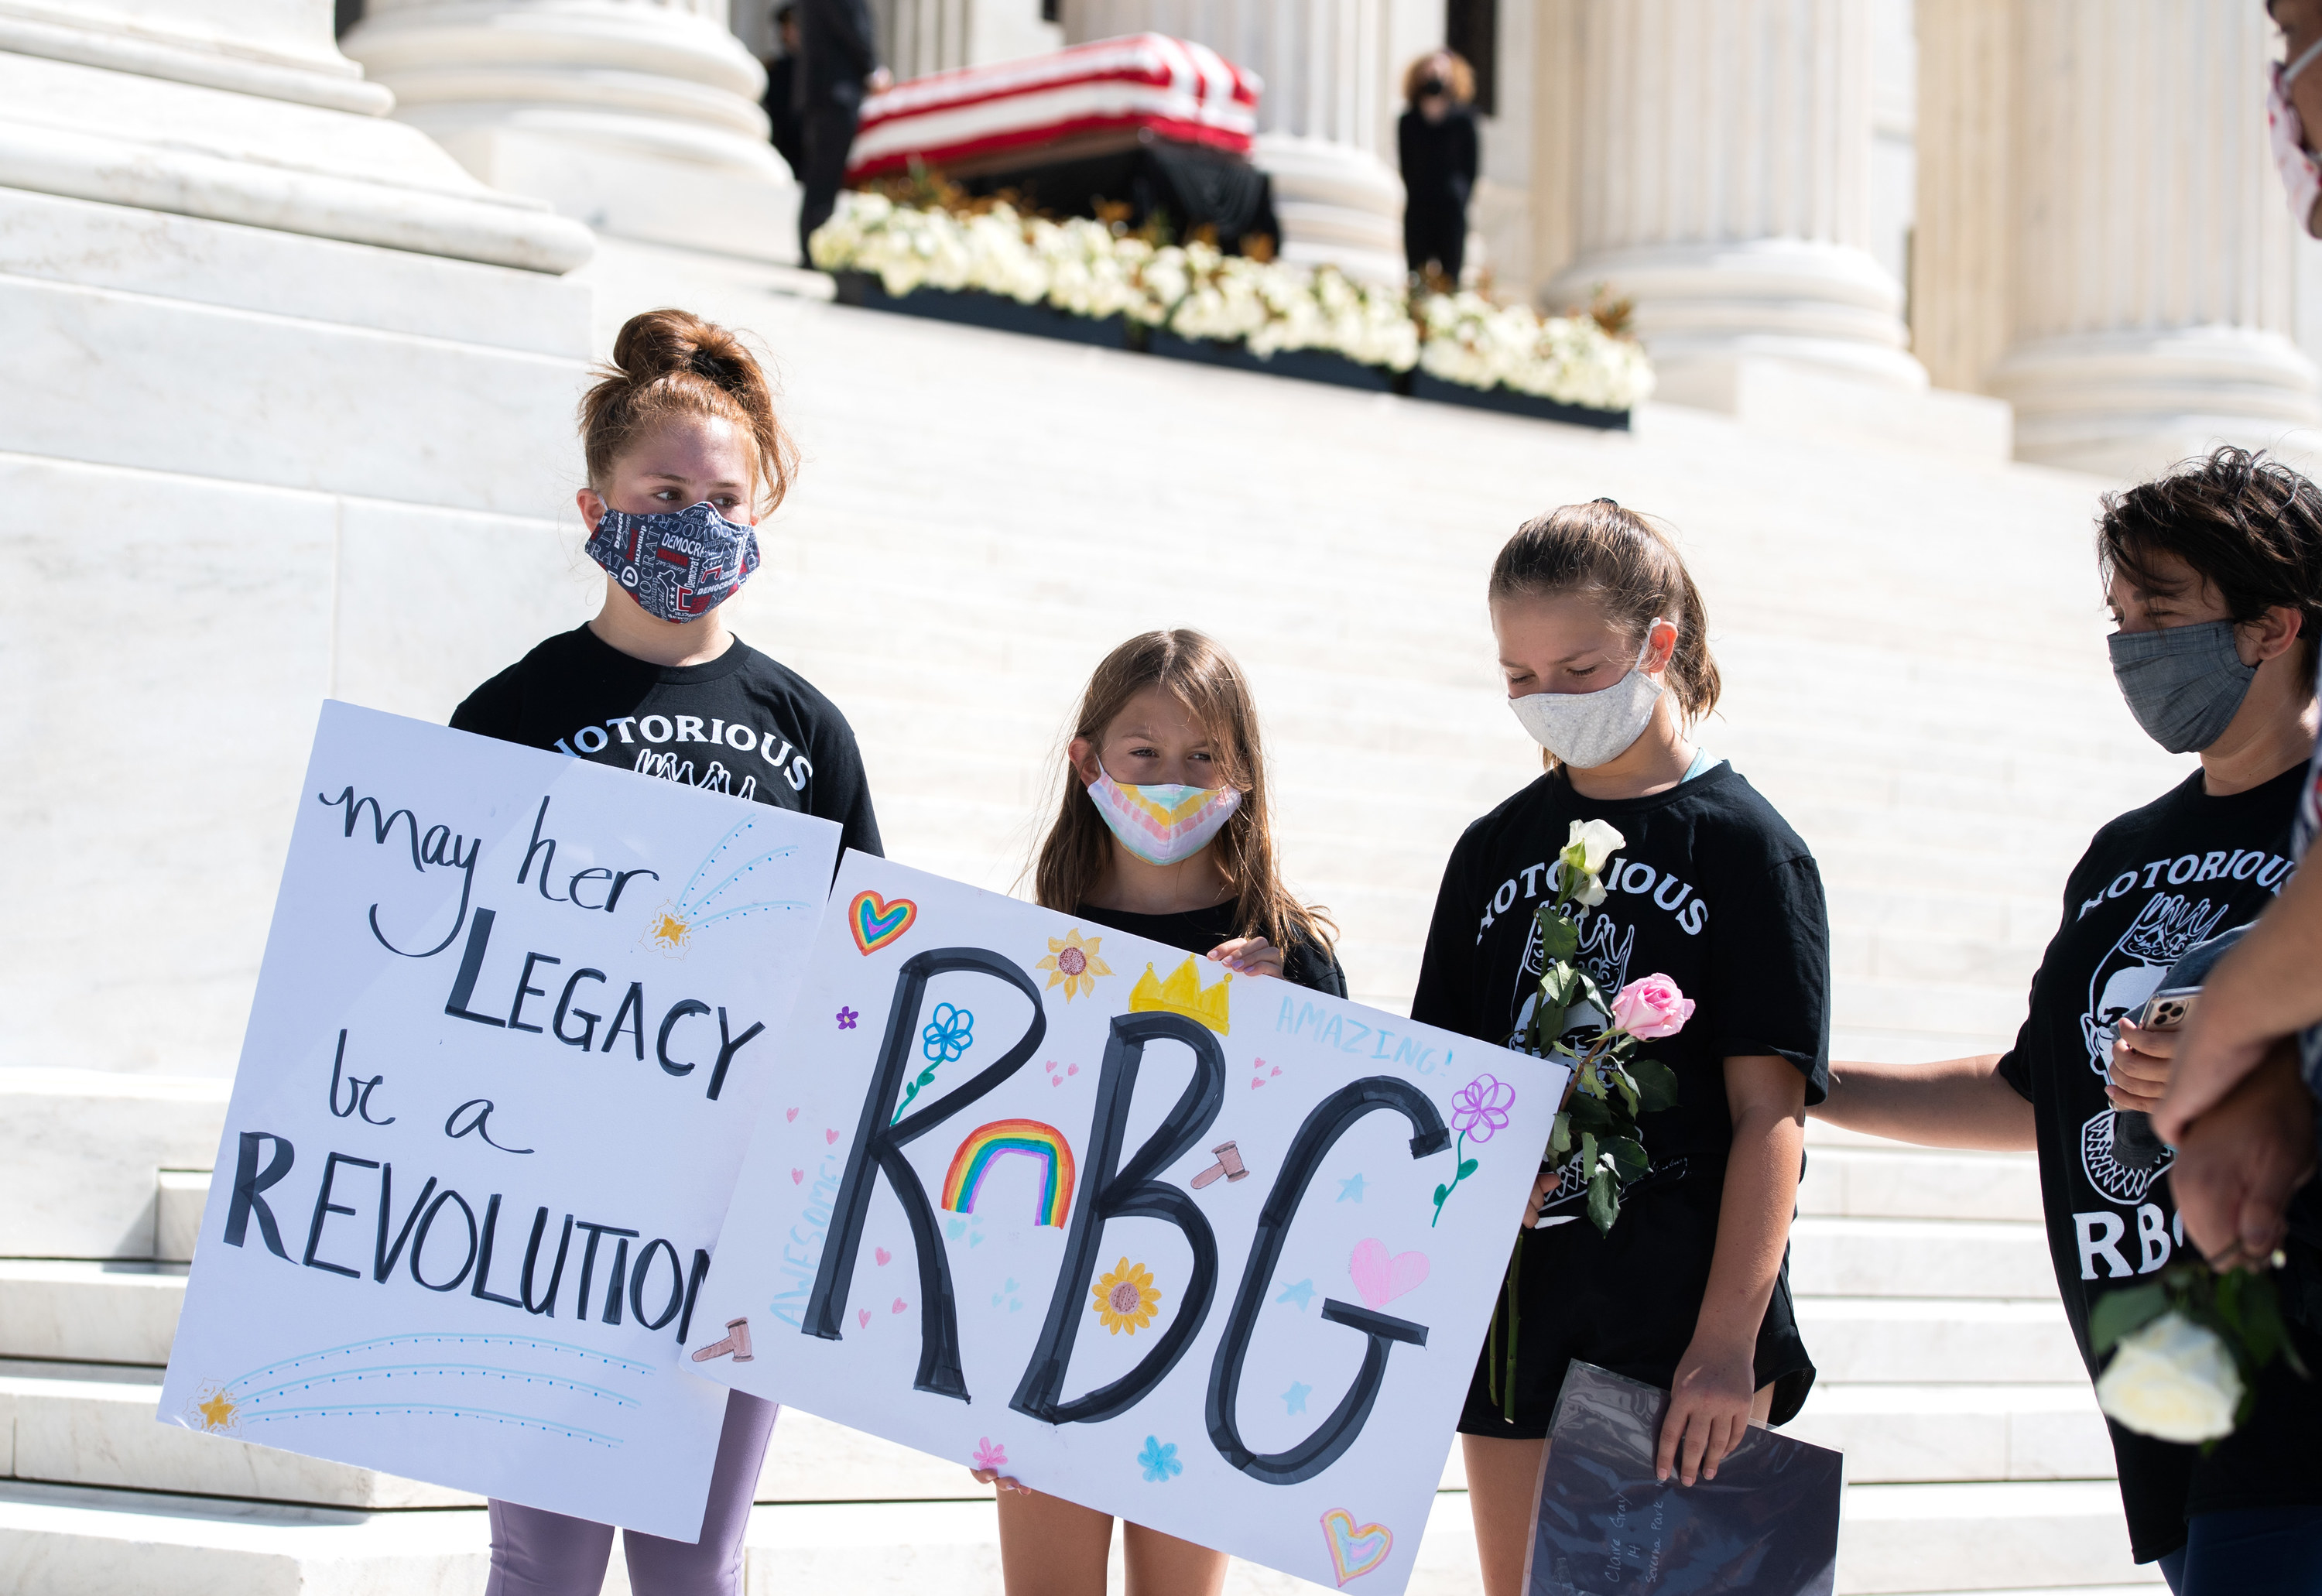 Three girls carry signs saying RGB and may her legacy be a revolution